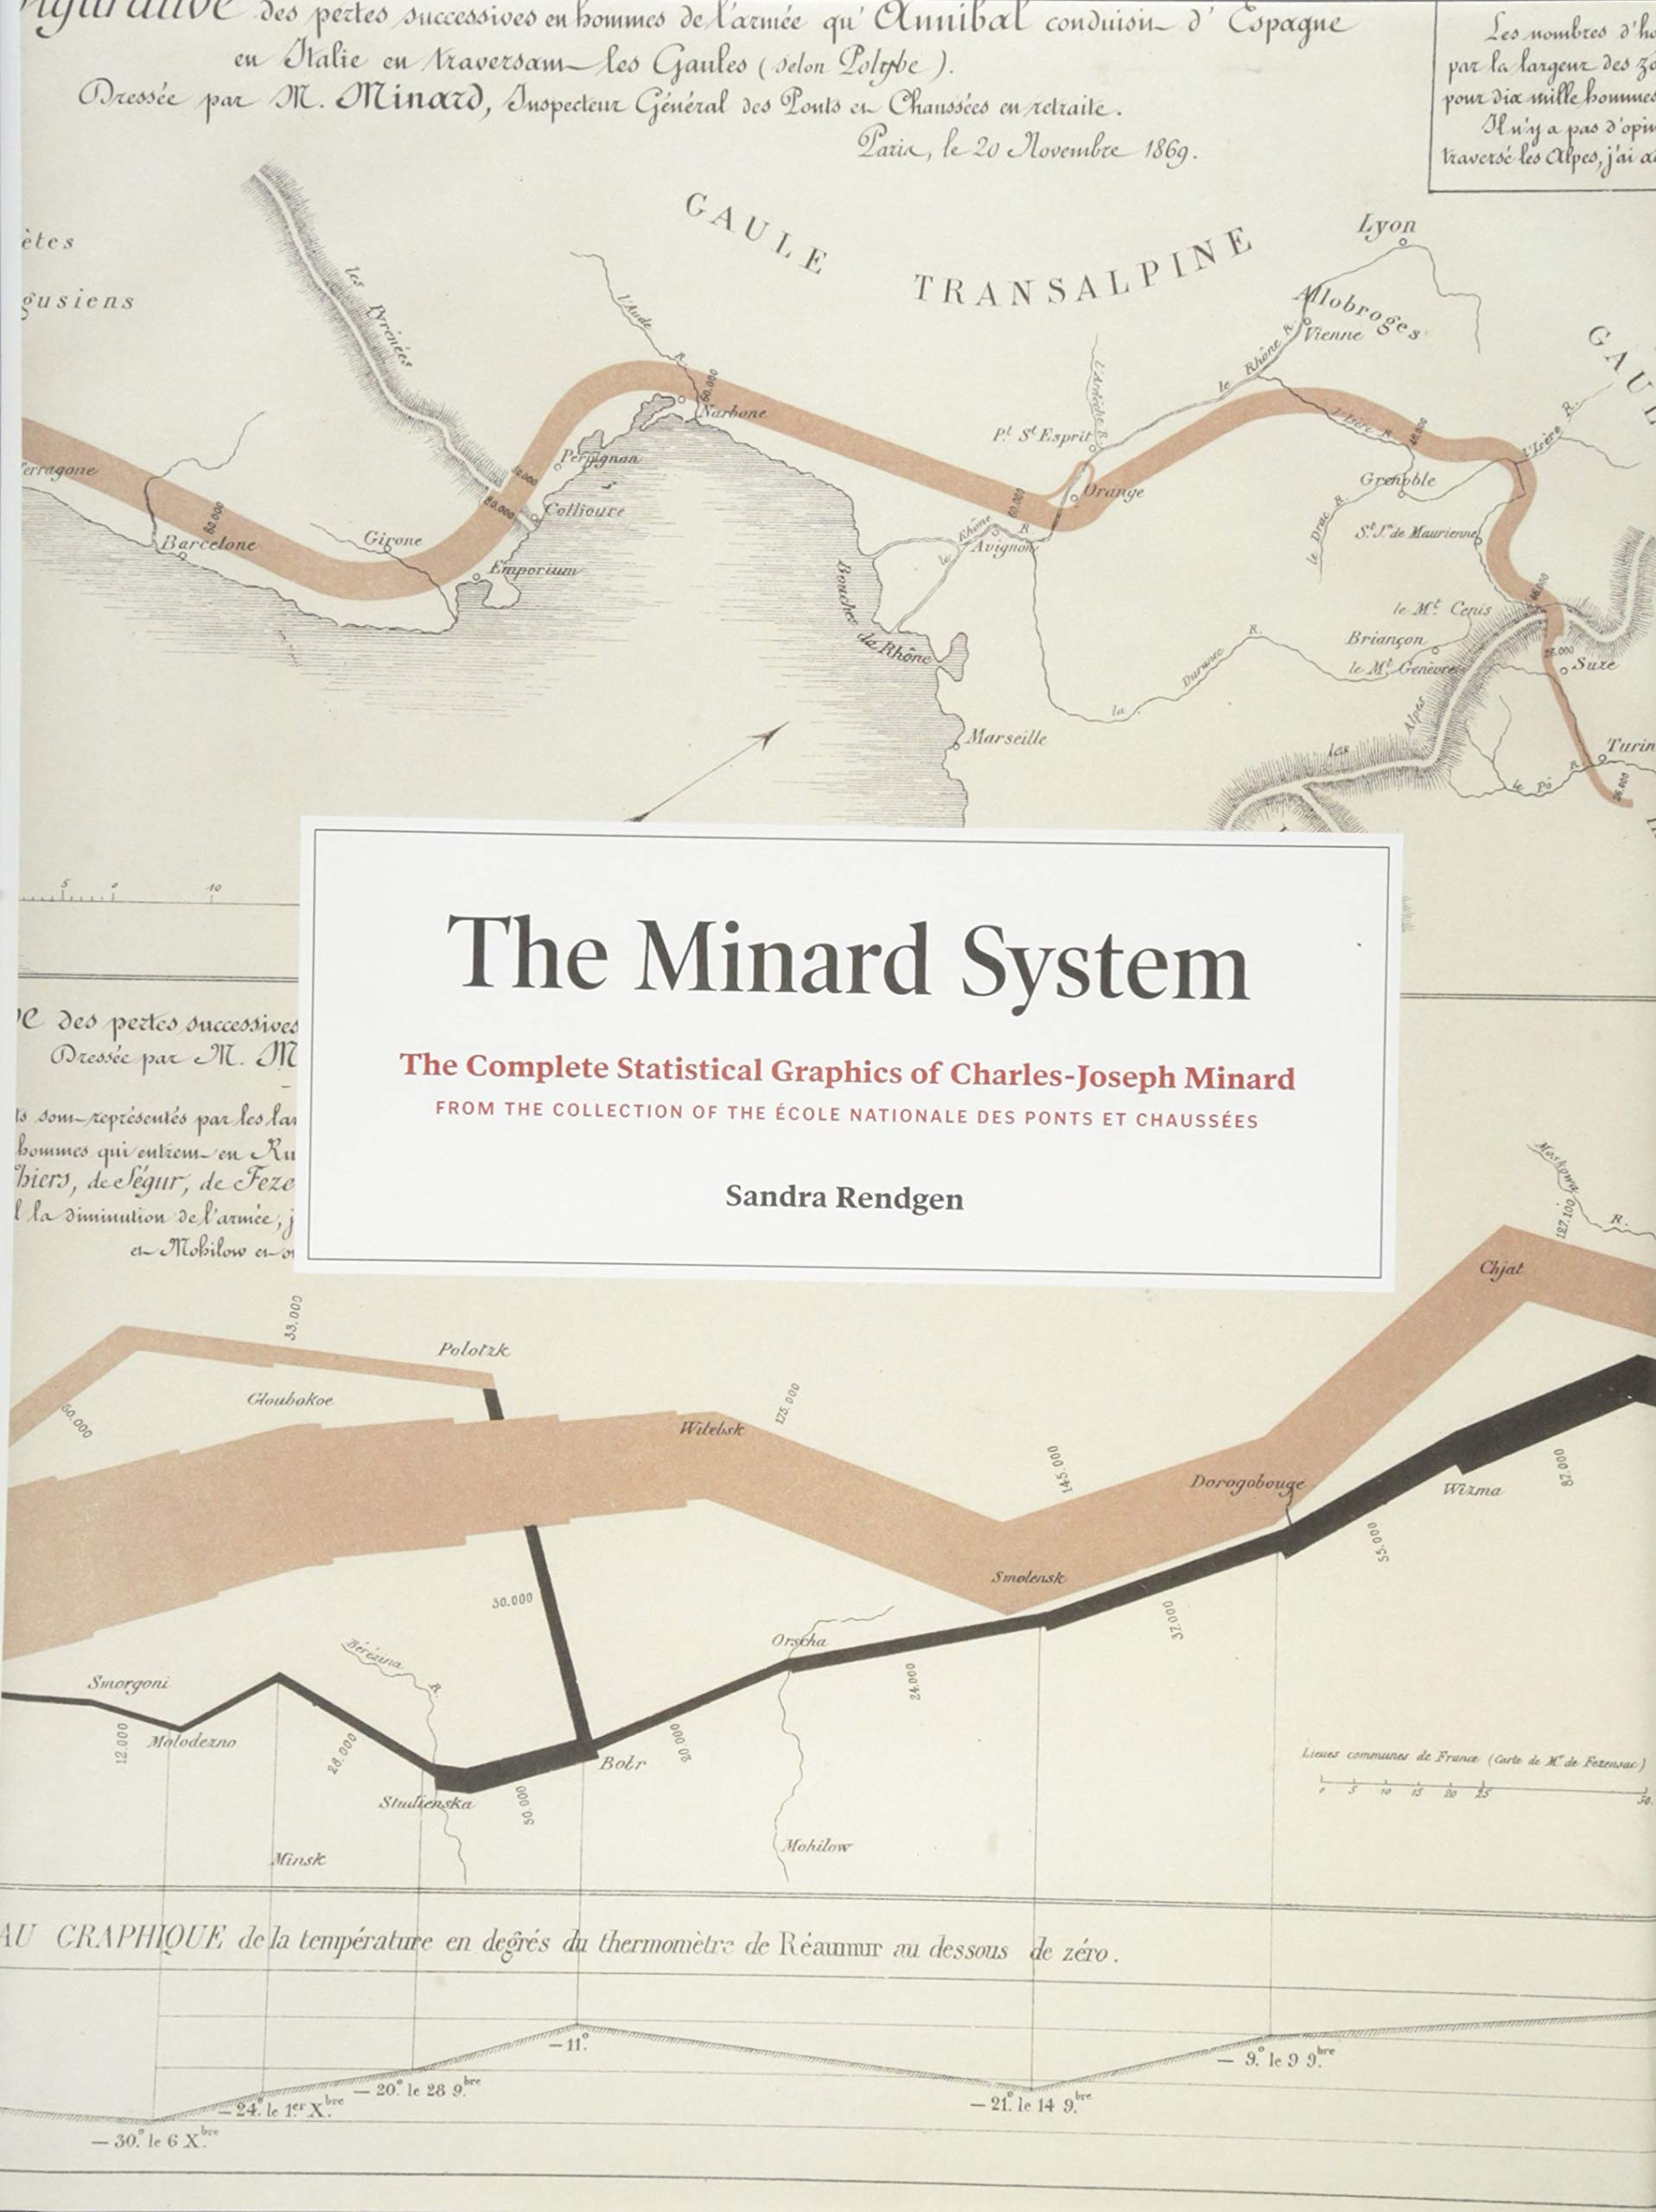 Image OfThe Minard System: The Graphical Works Of Charles-Joseph Minard: The Complete Statistical Graphics Of Charles-Joseph Minard